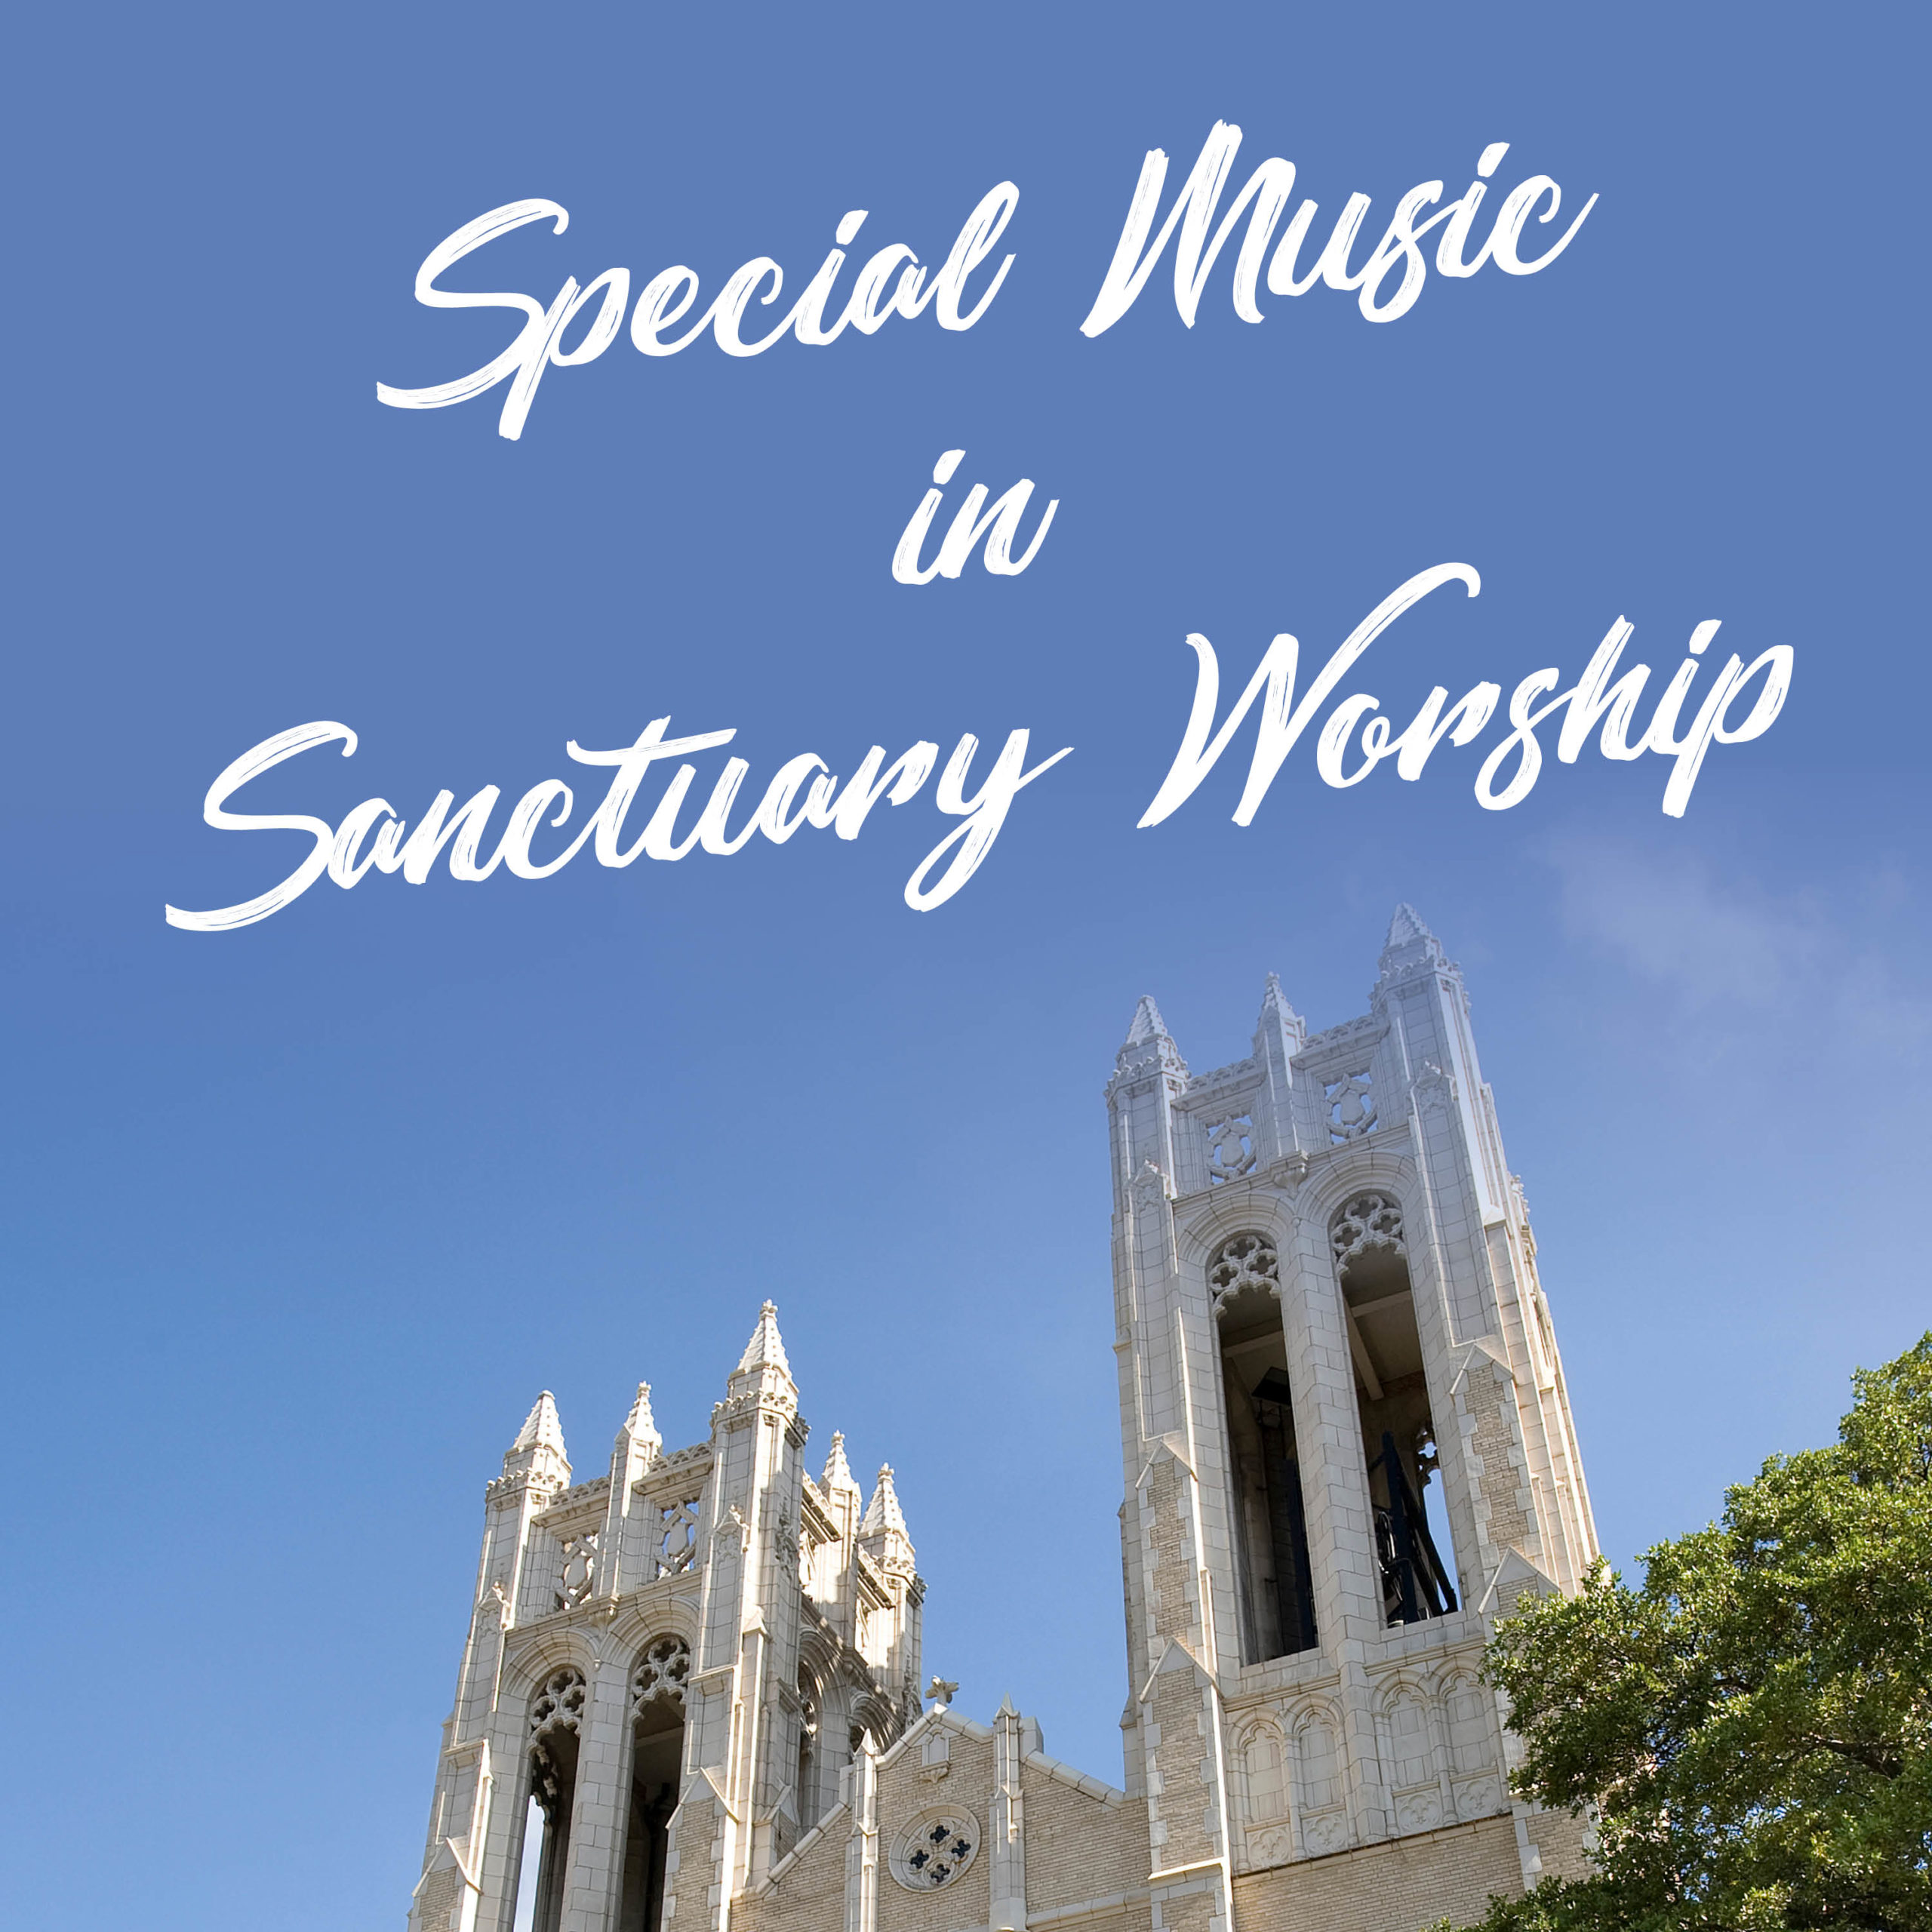 Special Music This Sunday: Arthur and Evelyn Busby